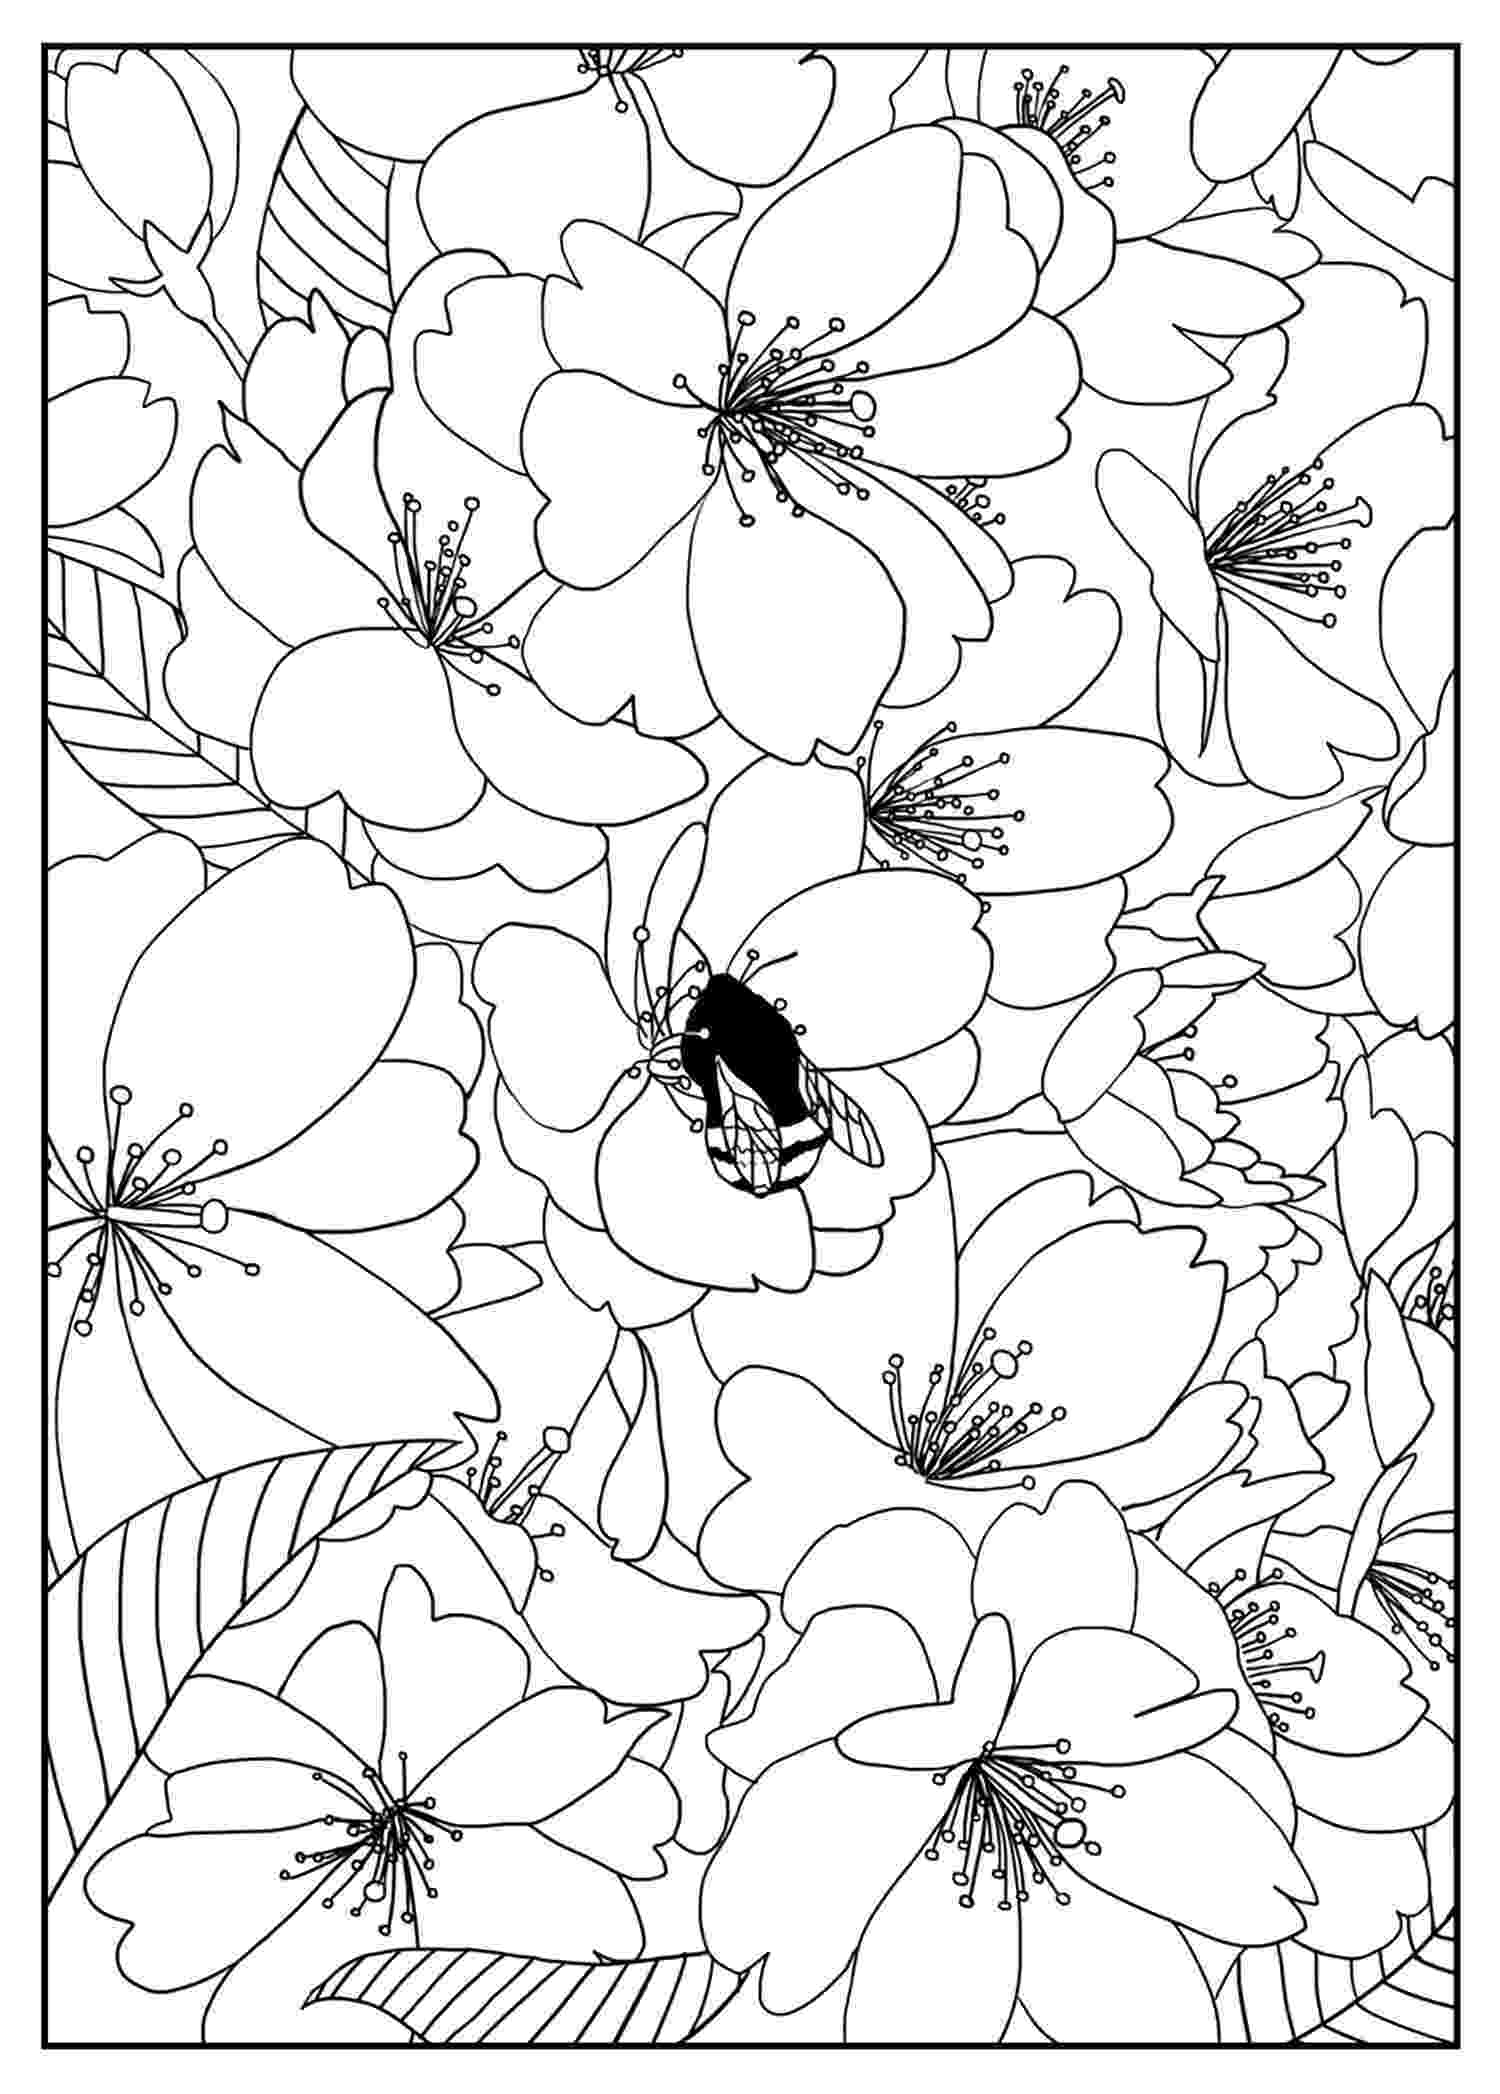 flower for coloring free printable flower coloring pages for kids best flower for coloring 1 1